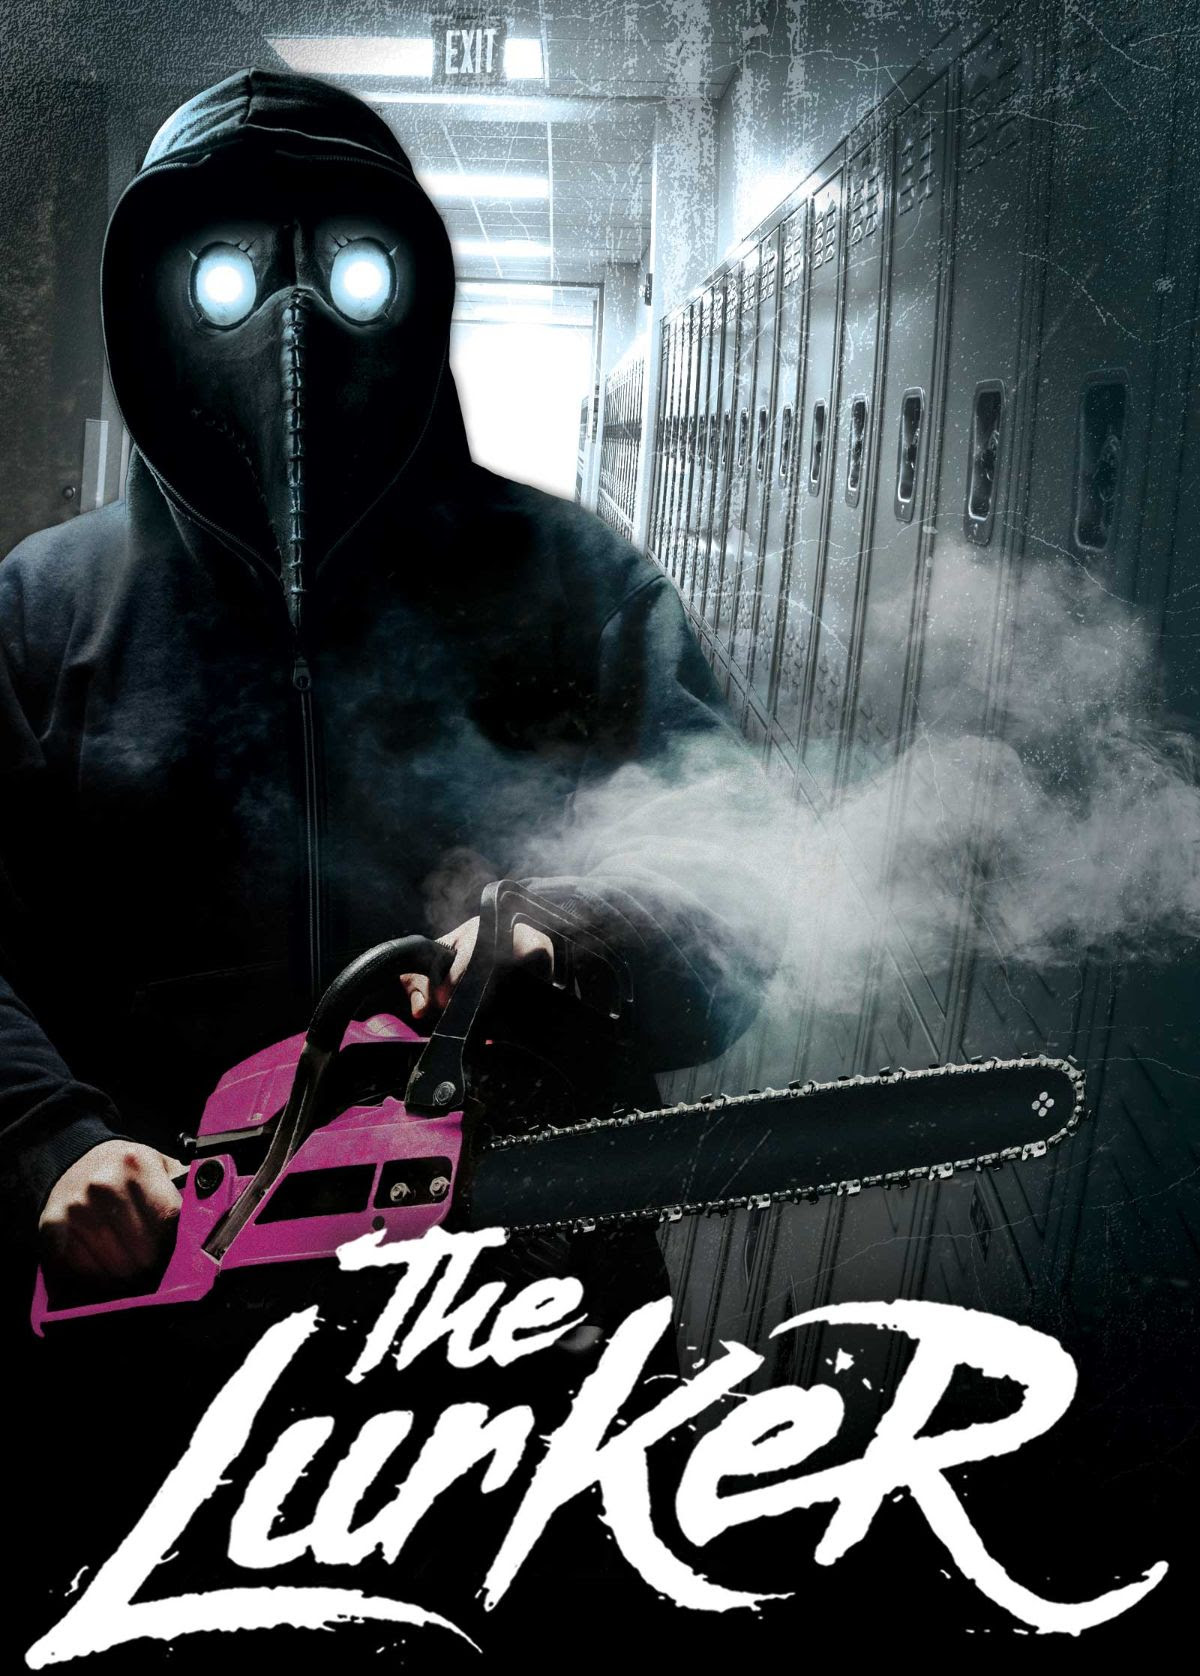 Film Review: THE LURKER (2019)